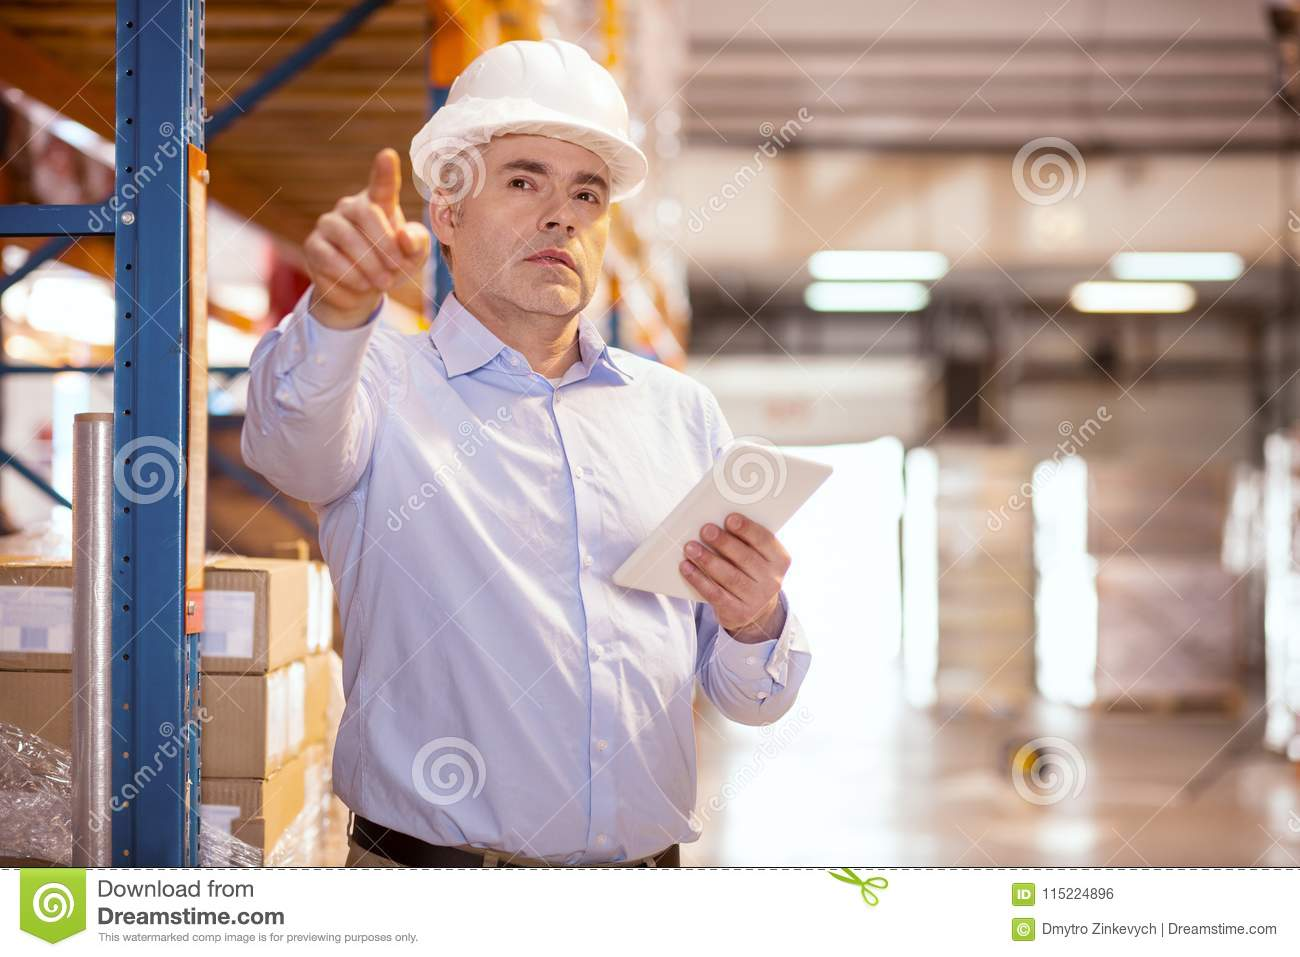 Smart Experienced Manager Being At Work Stock Photo - Image of